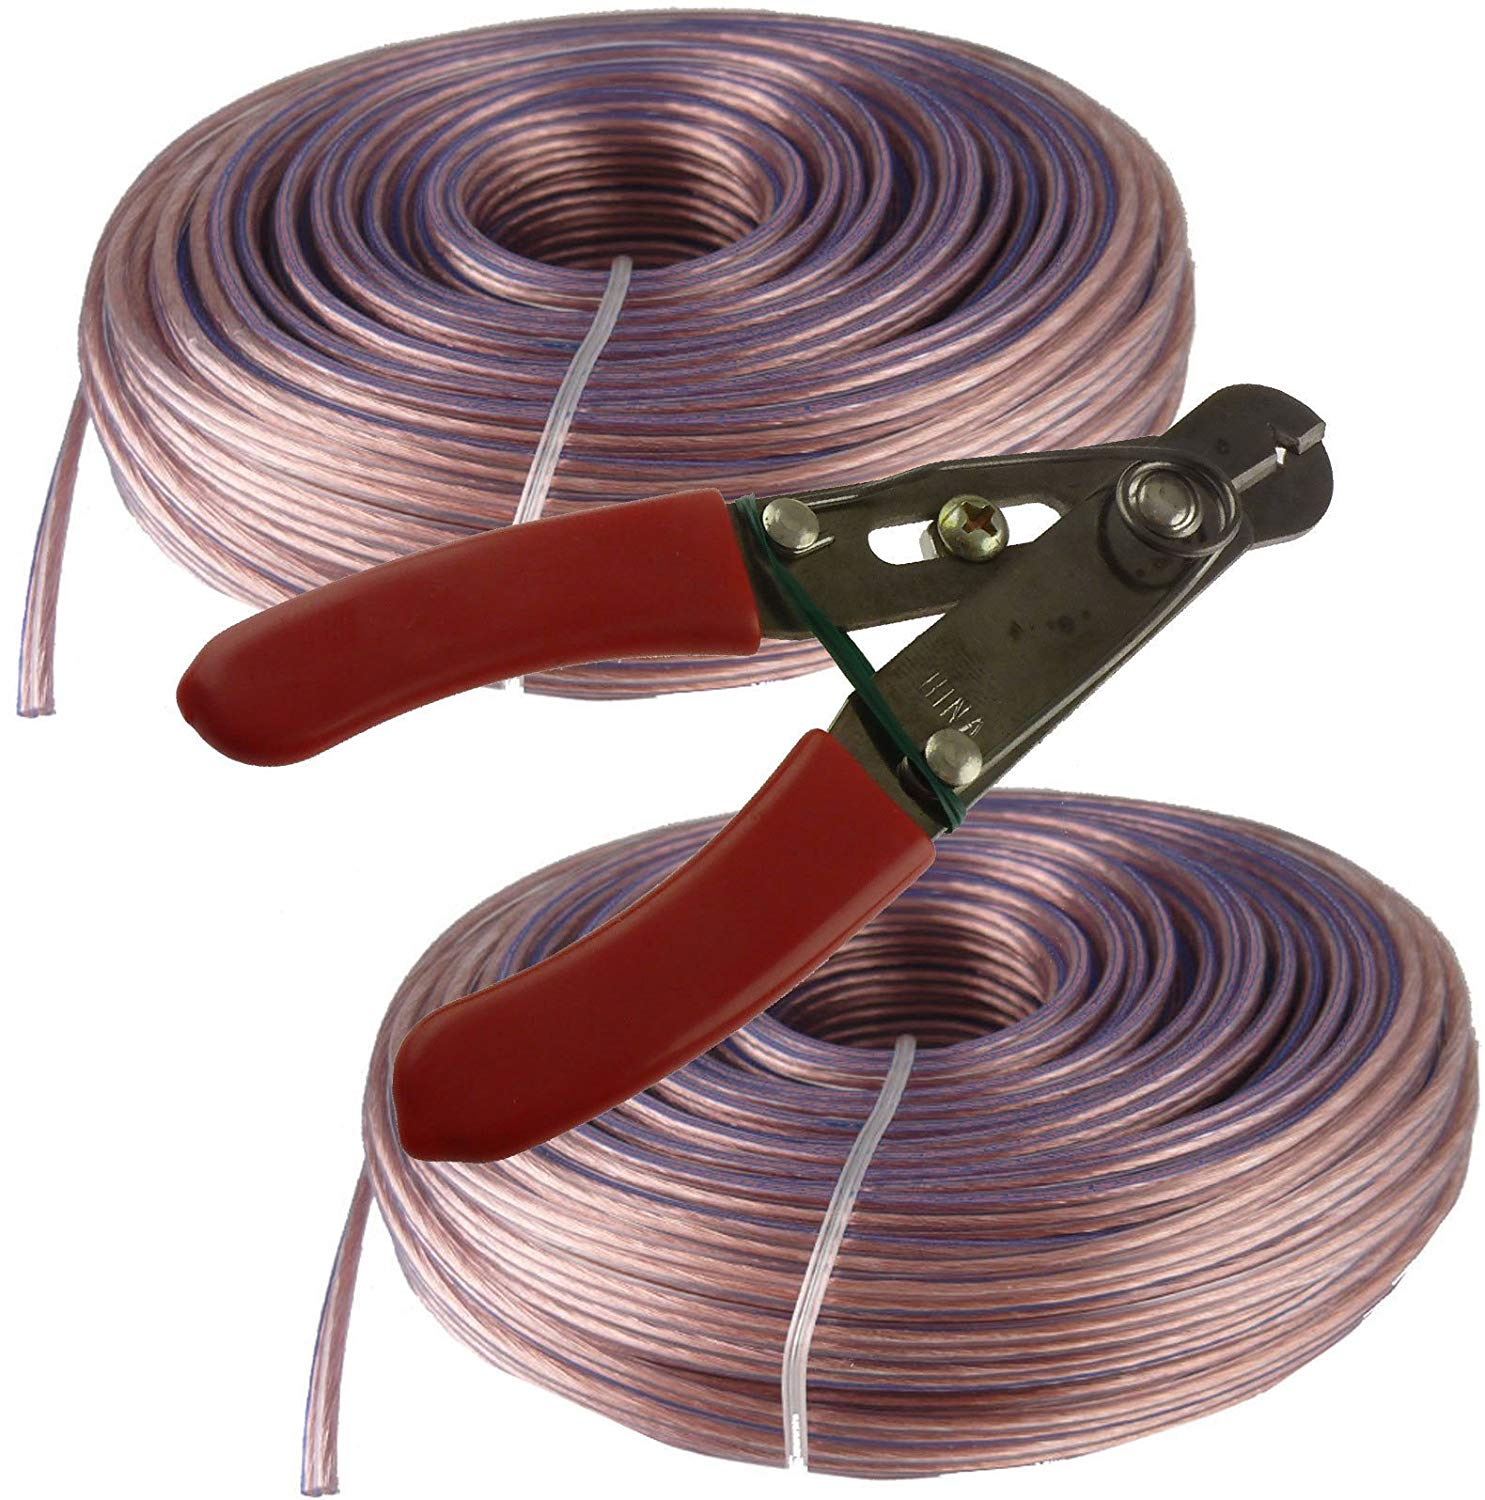 200'ft feet 18 awg ag Gauge Audio Speaker Wire Cable OFC Copper + Free Stripper!